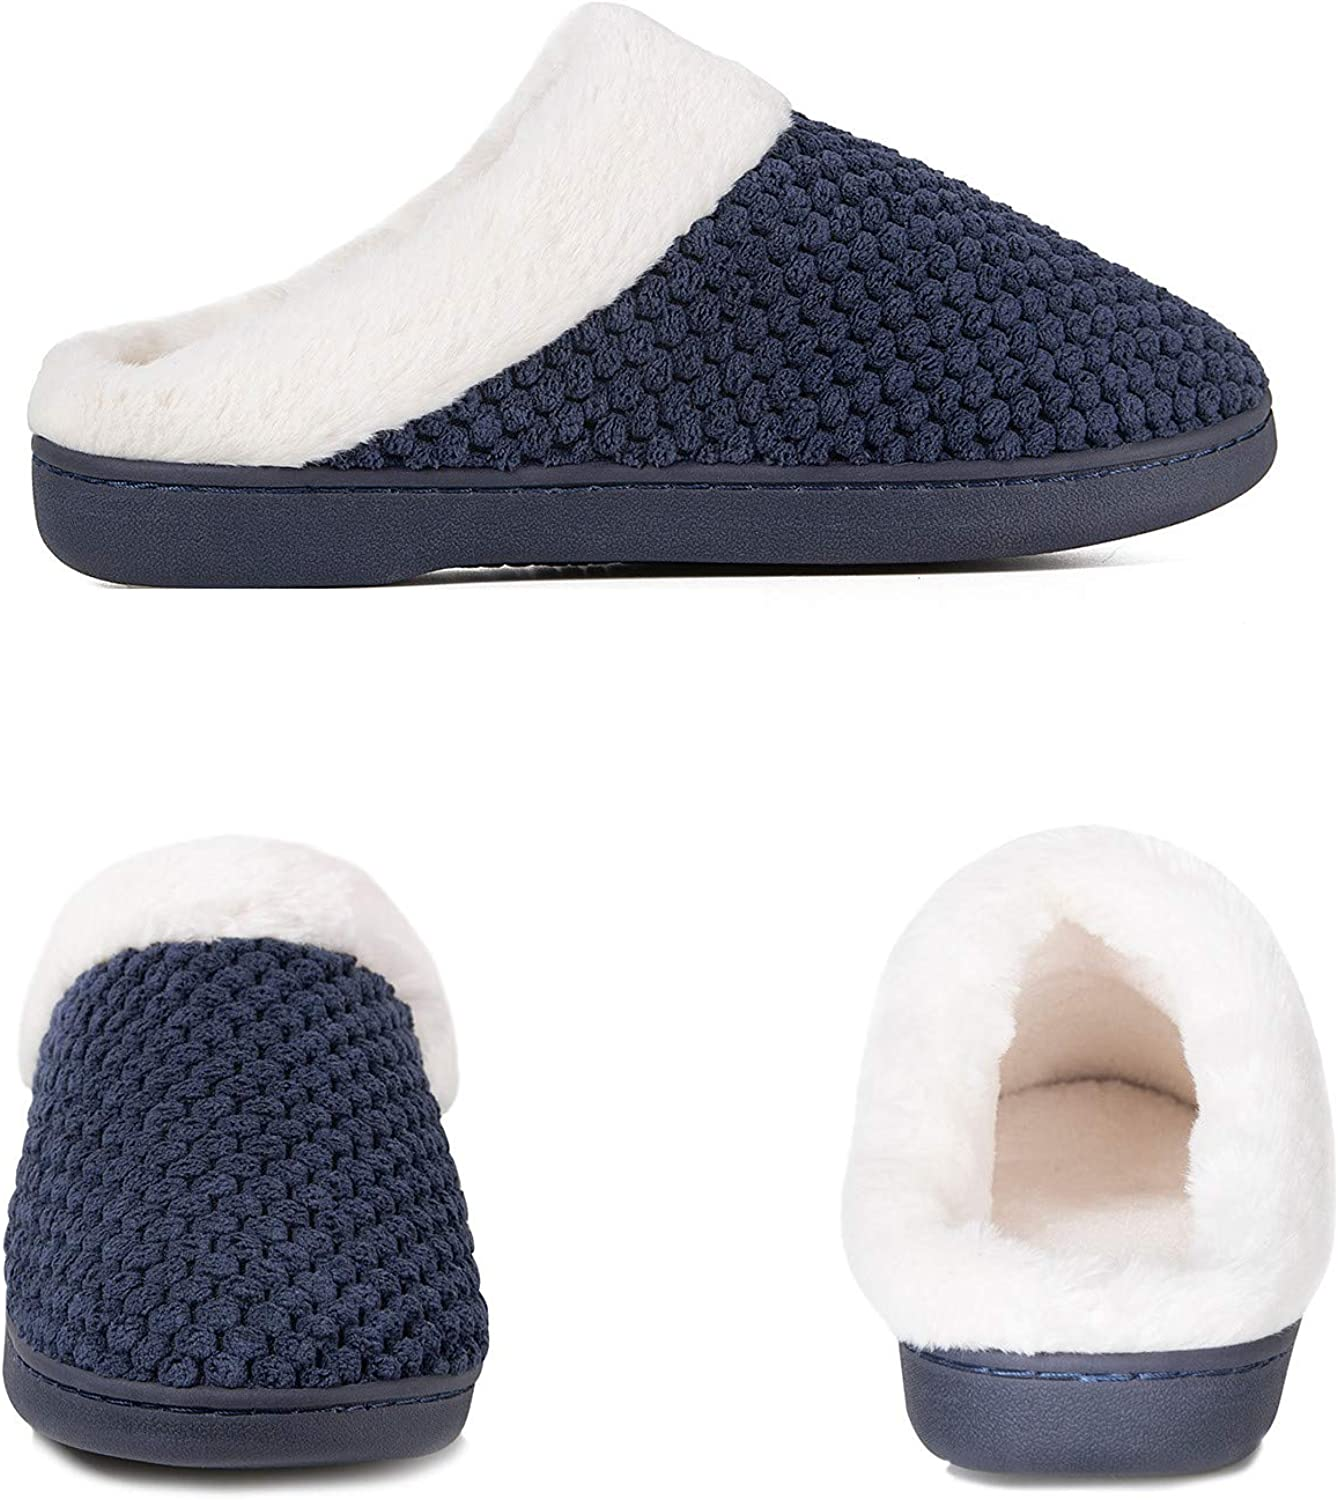 Ladies House Slippers Memory Foam Slippers for Women Comfortable Warm Cosy Non Slip Indoor Outdoor Home Slippers